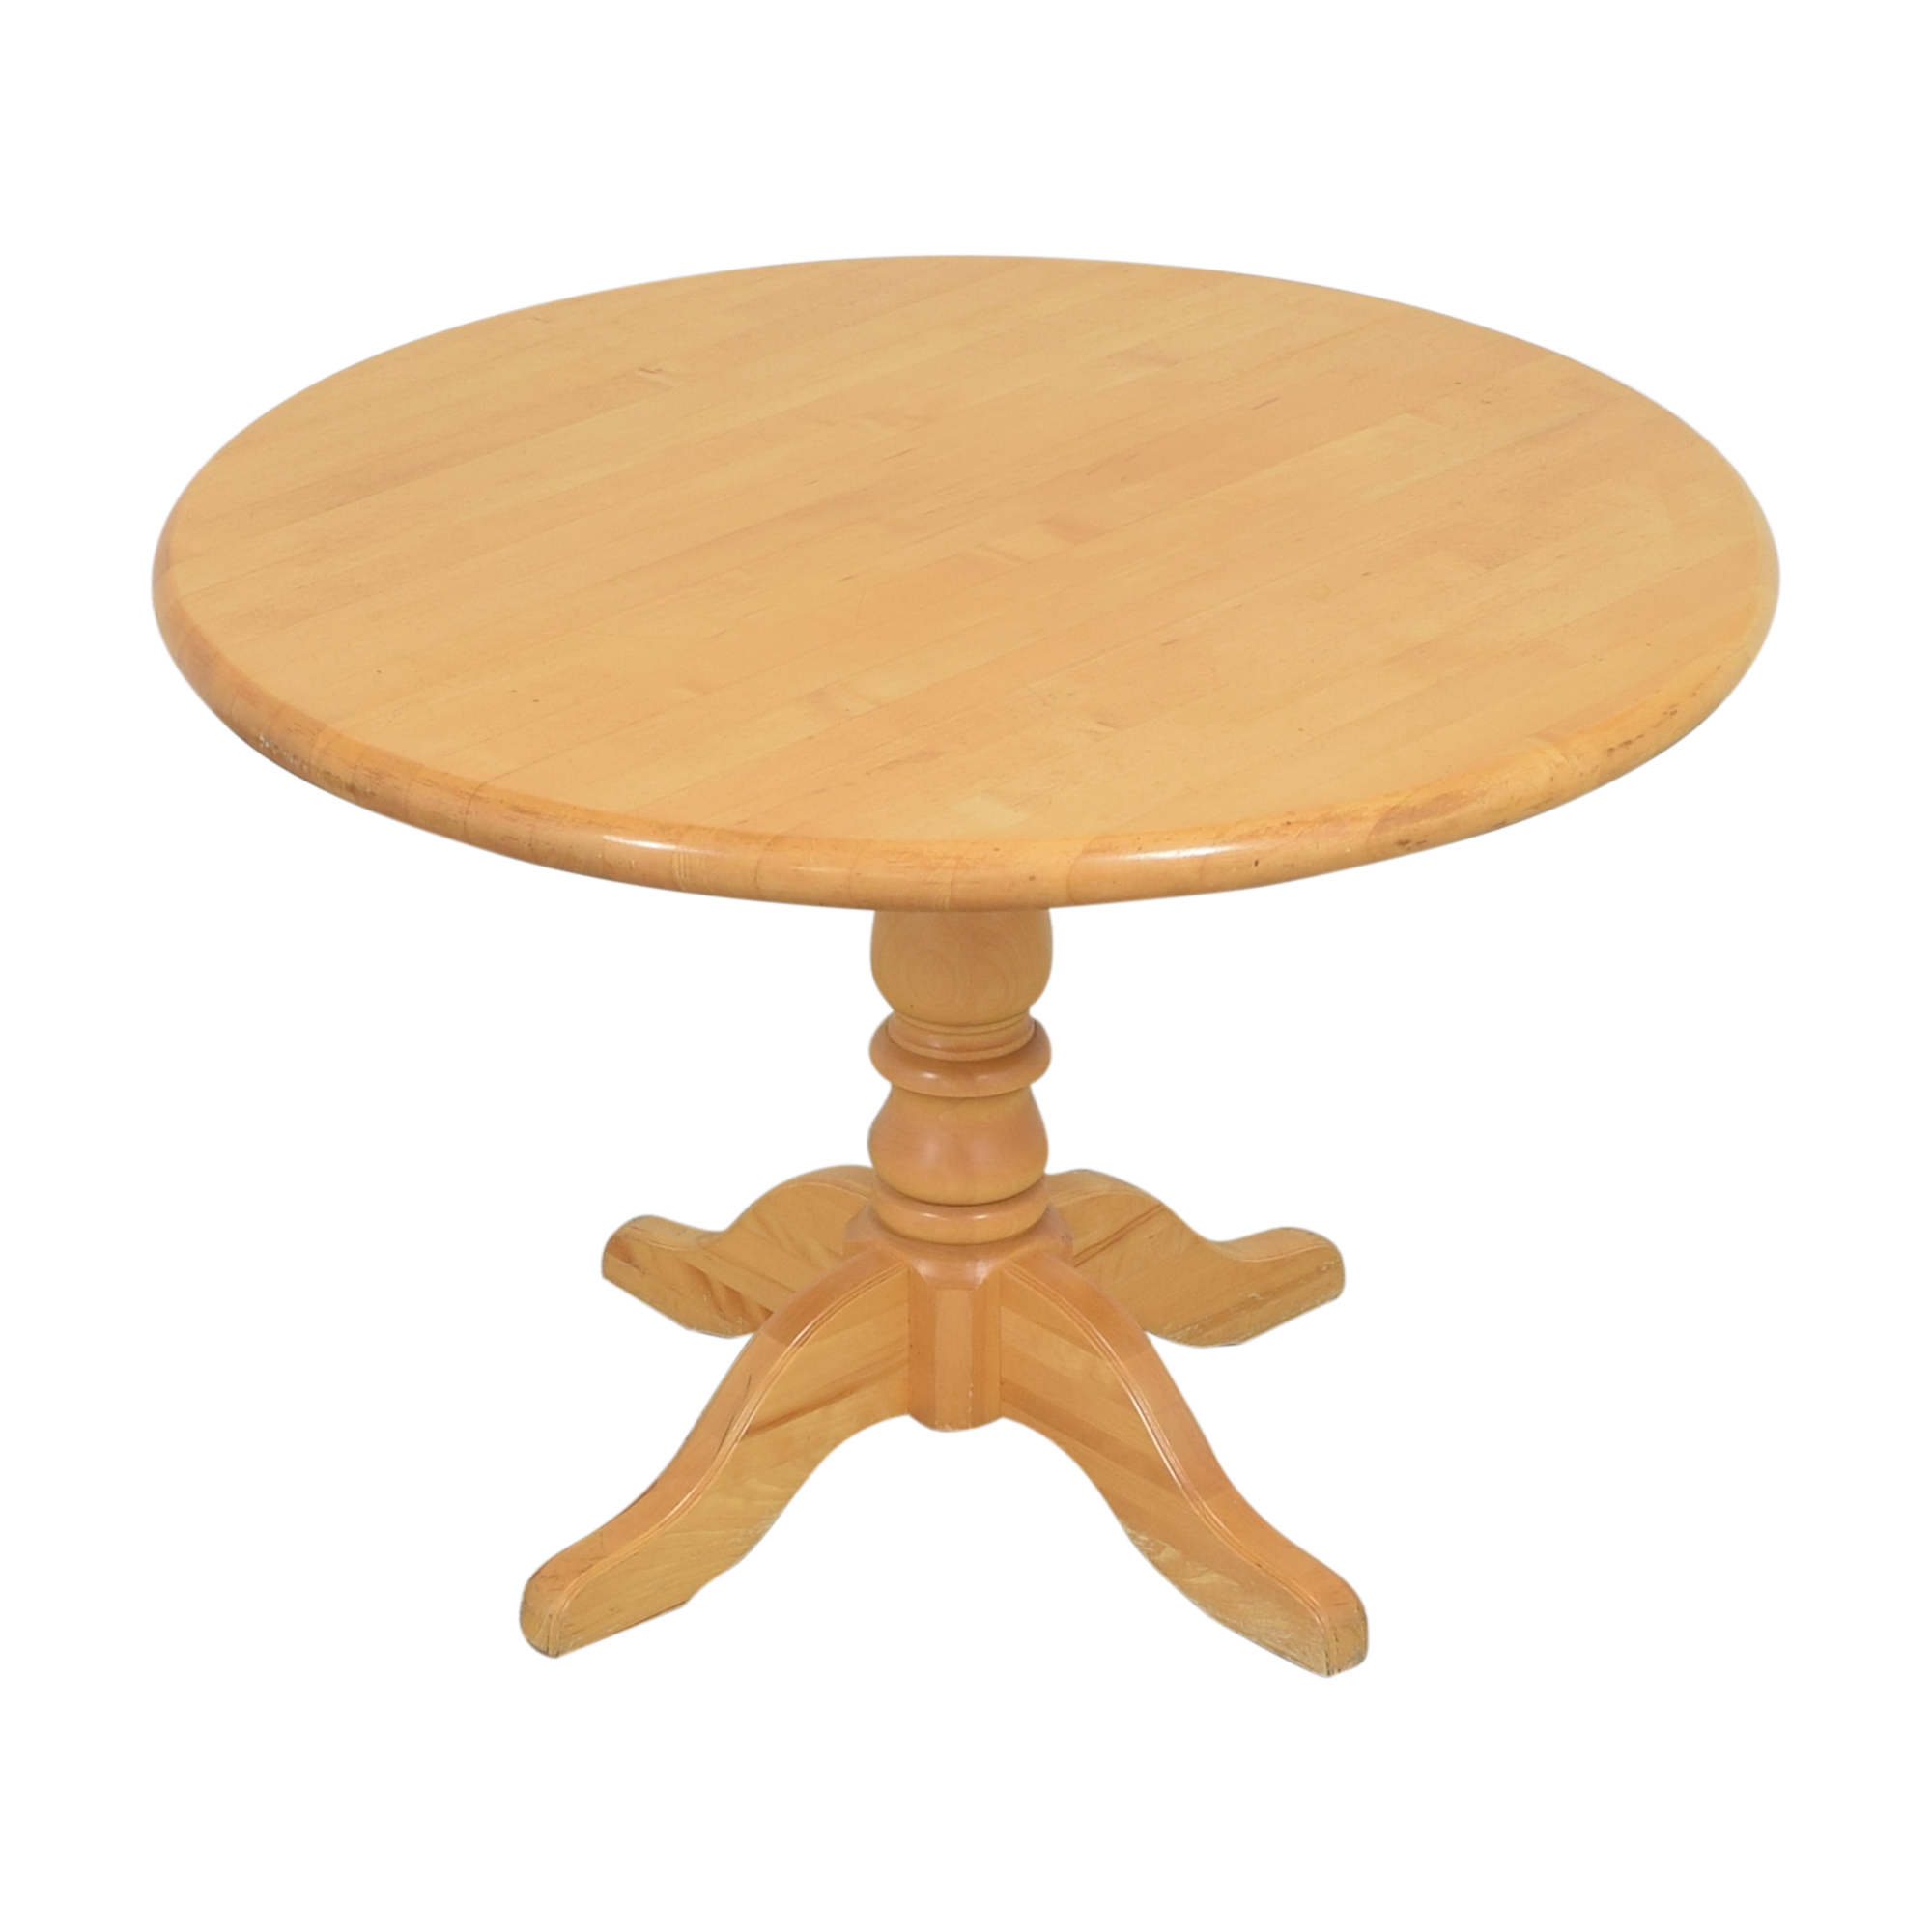 Macy's Macy's Round Dining Table for sale